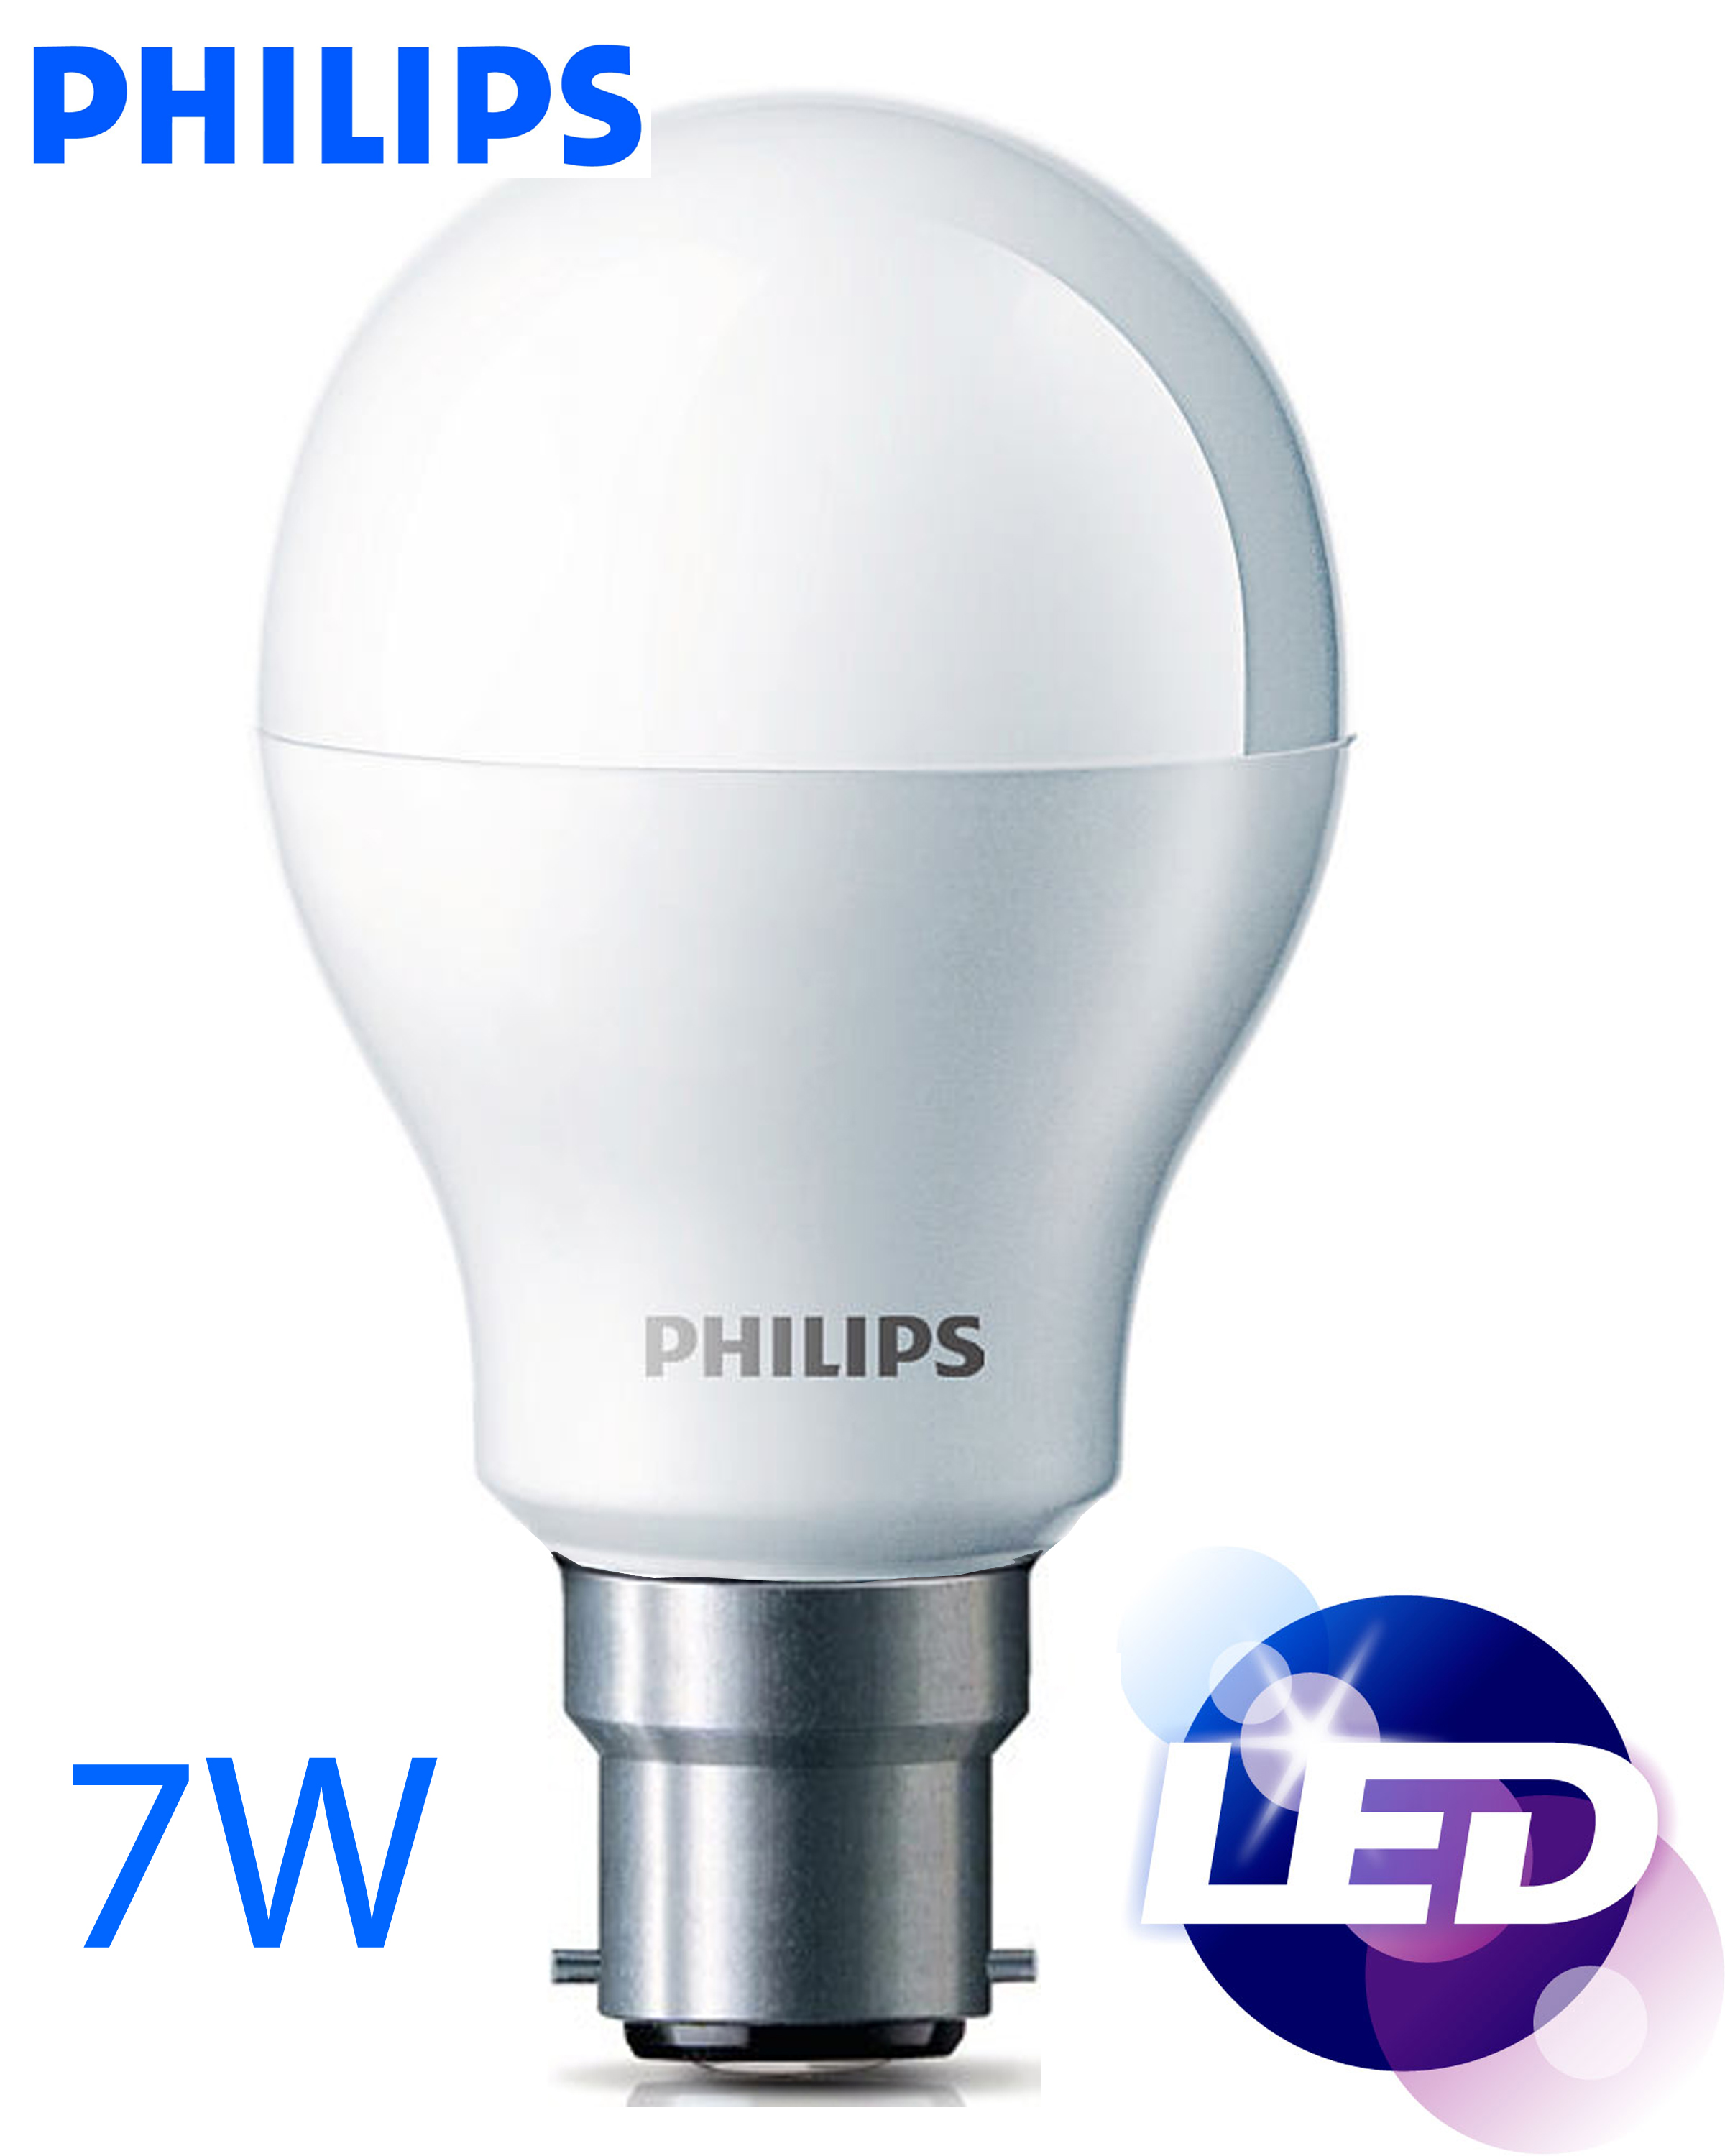 Home Appliances Small Appliances Emergency Lights Lamps Philips 7 Watts Led Bulb